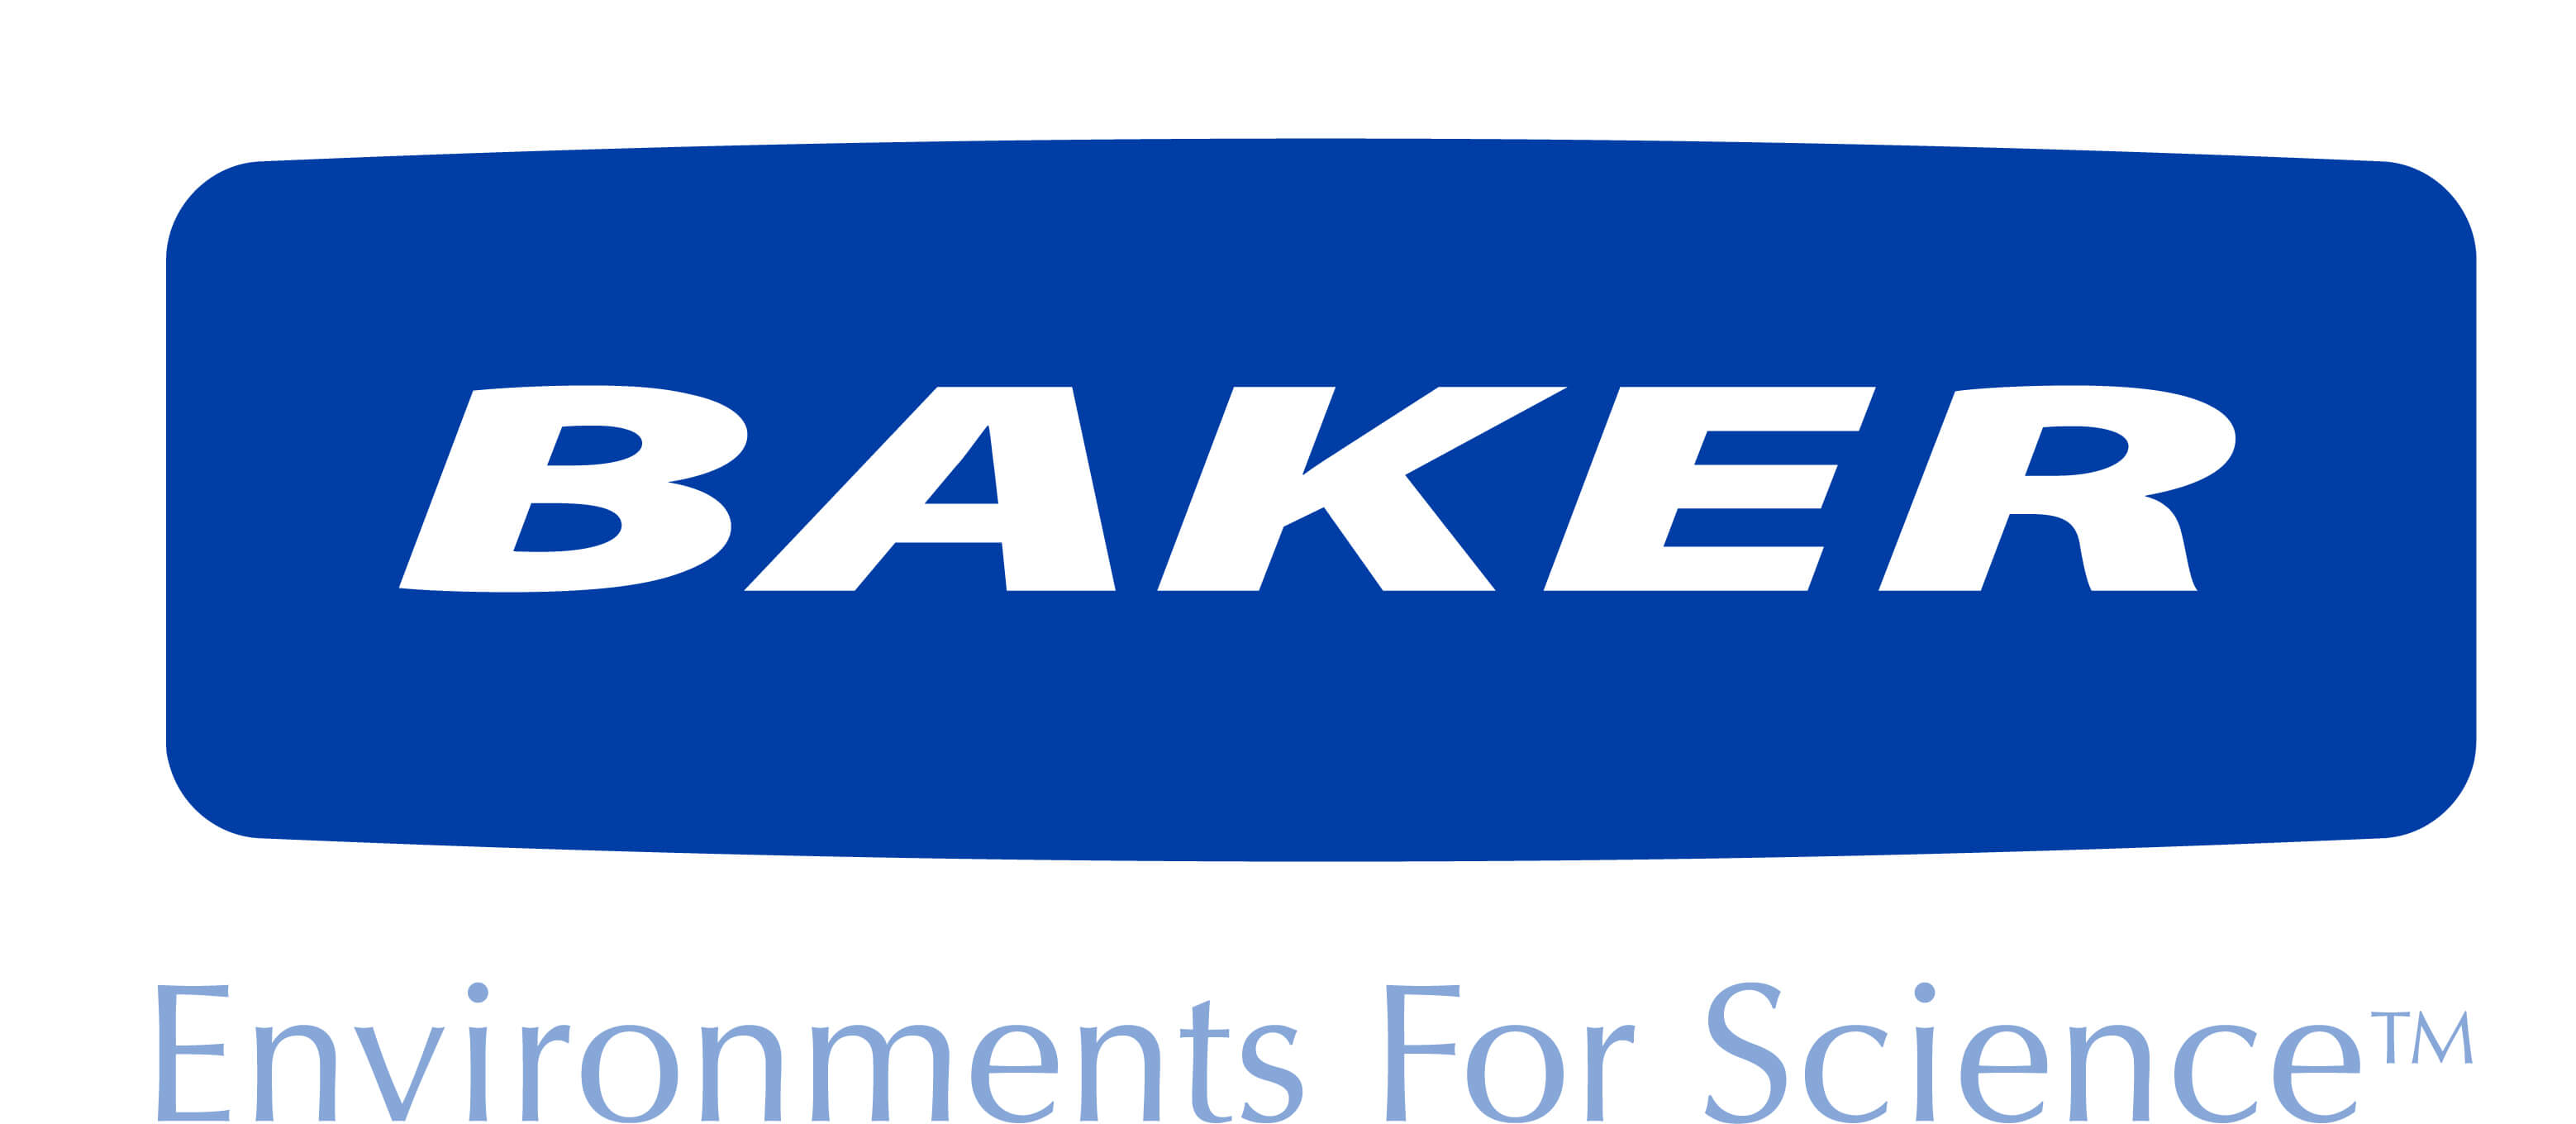 The Baker Company logo